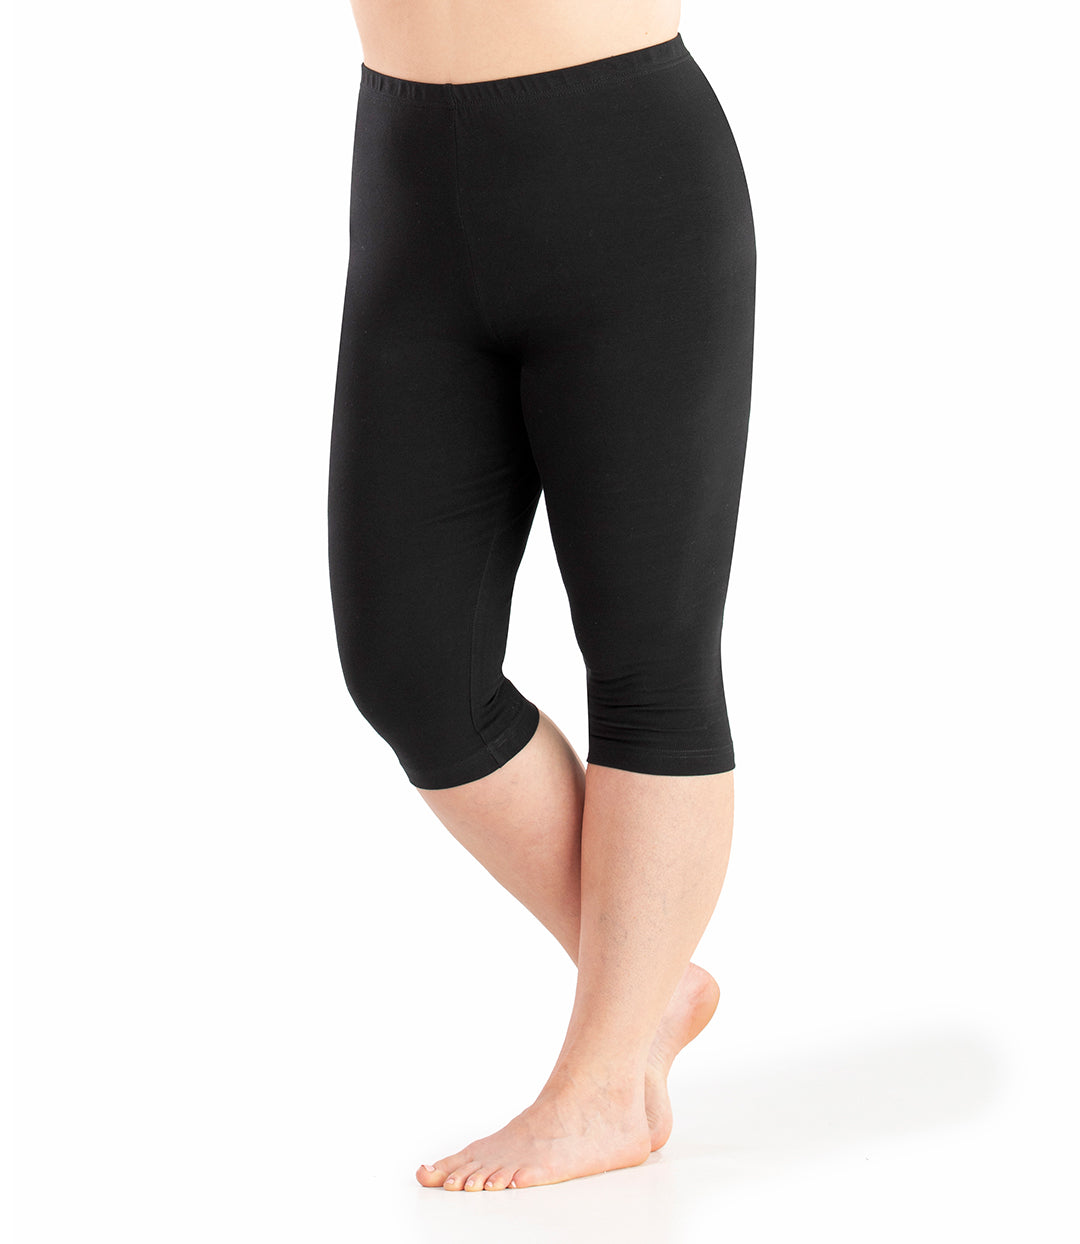 Stretch Naturals Below the Knee Capris-Shop by Activity-Hop Wo Trading Co Ltd-XL-Black-JunoActive